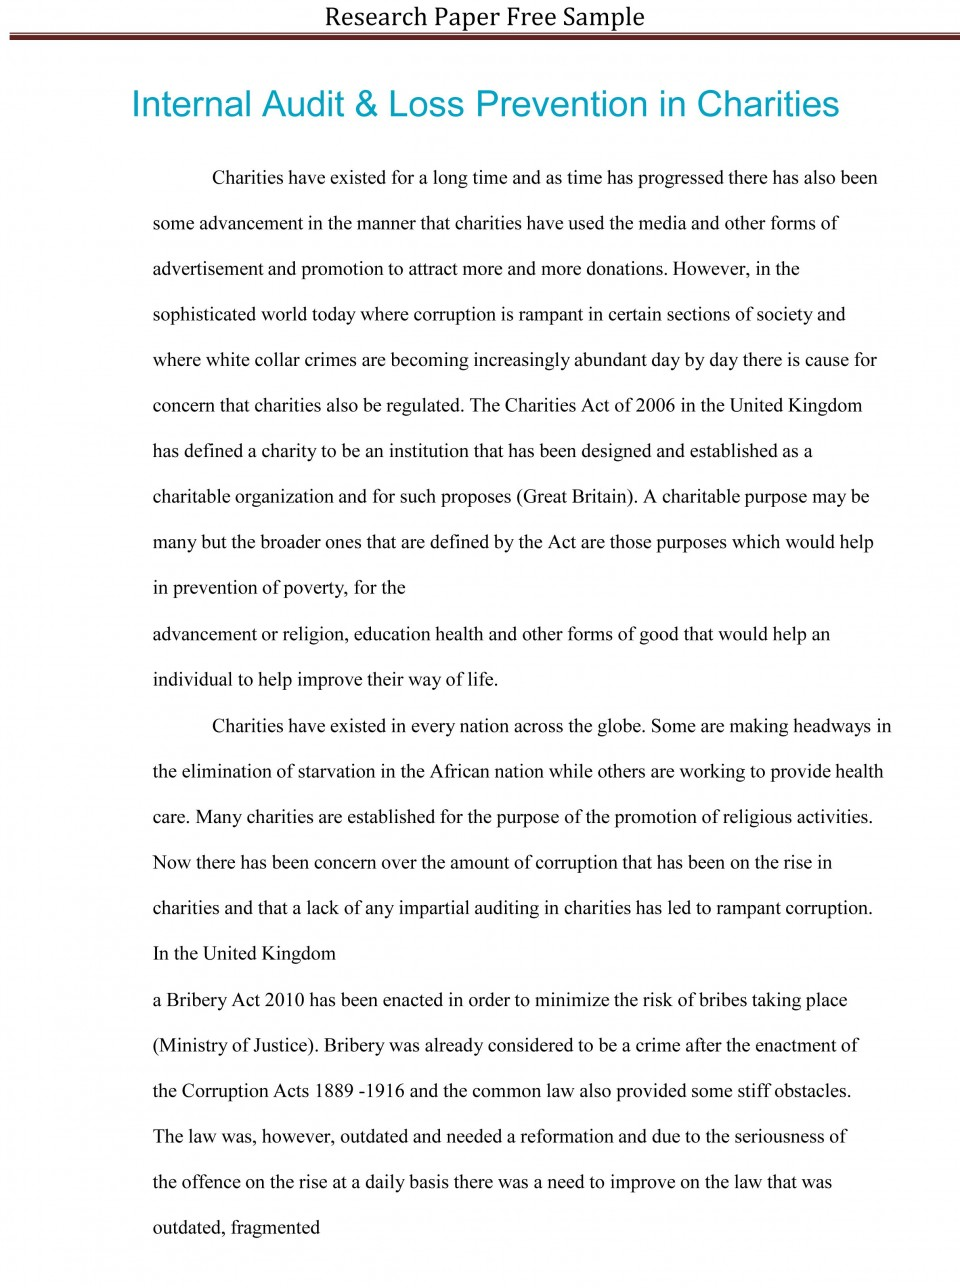 019 Research Paper Education Topic Wondrous Suggestions Ideas 960